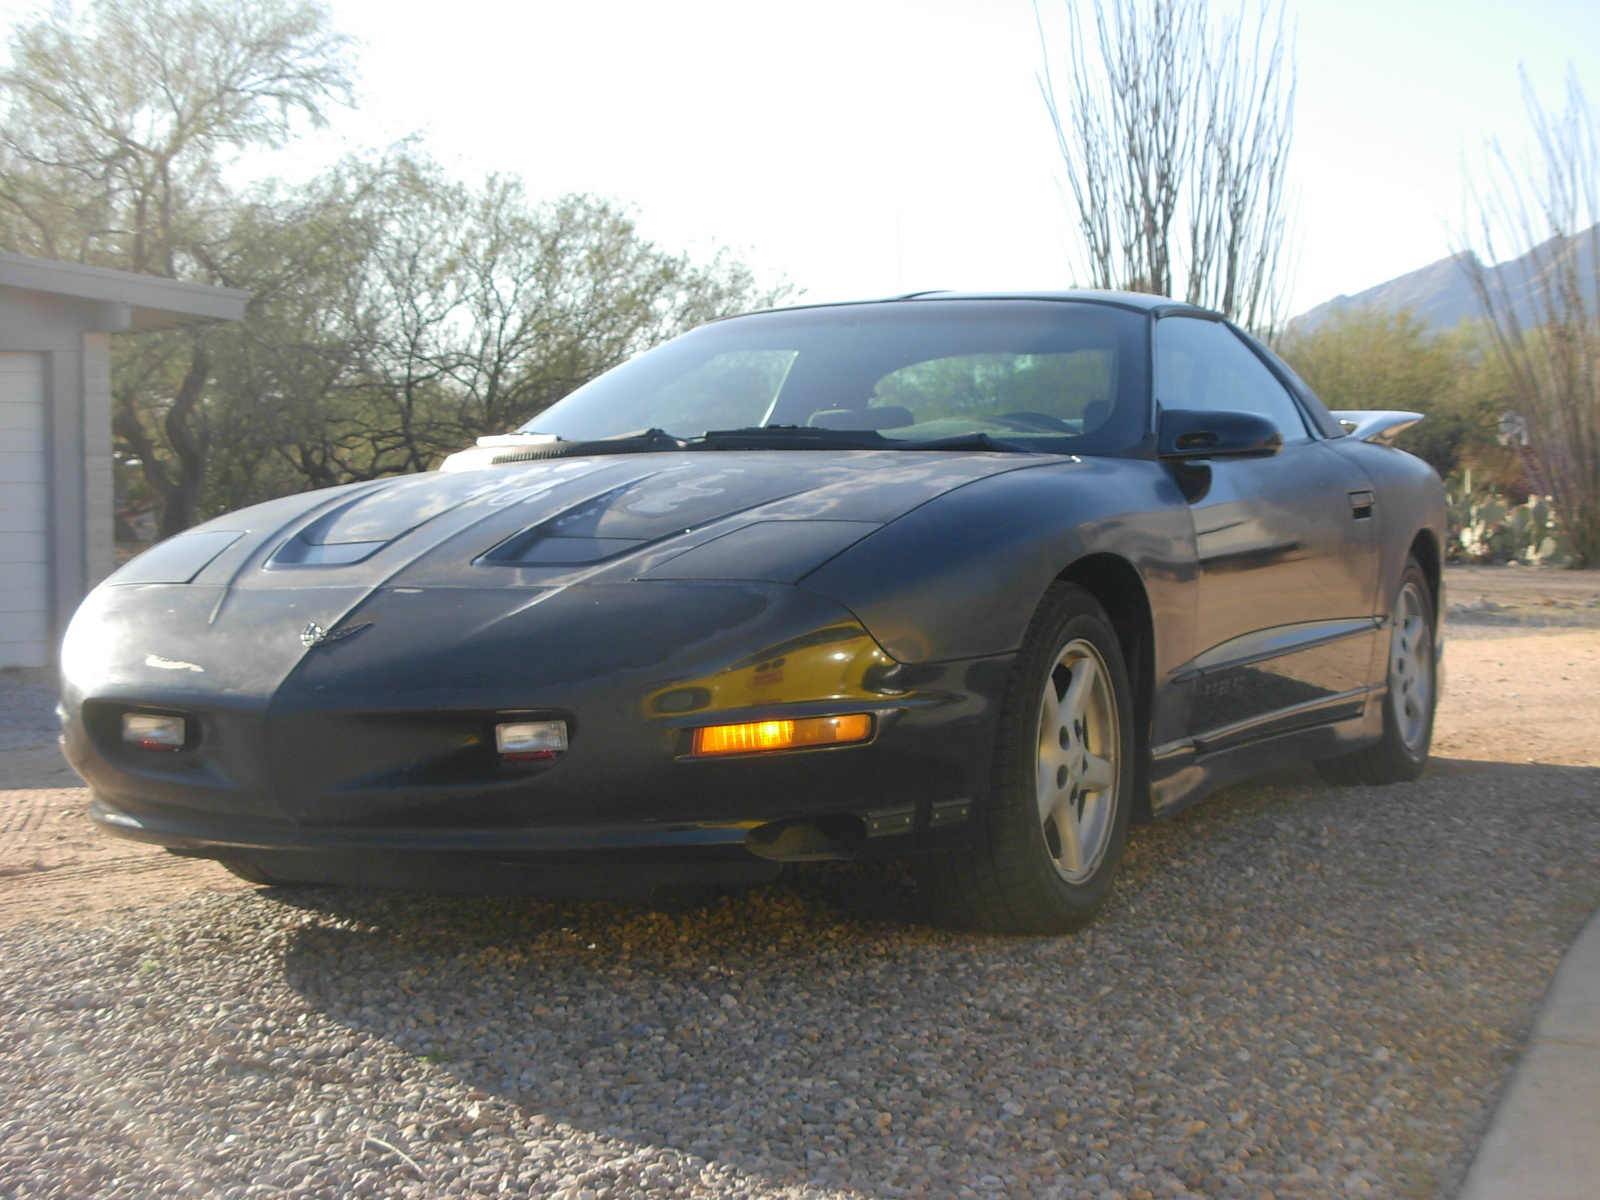 Pontiac Firebird Questions 1997 Electric Windows Wiring For 2002 Monsoon Stereo System And Radio Go Out When Bump Occurs